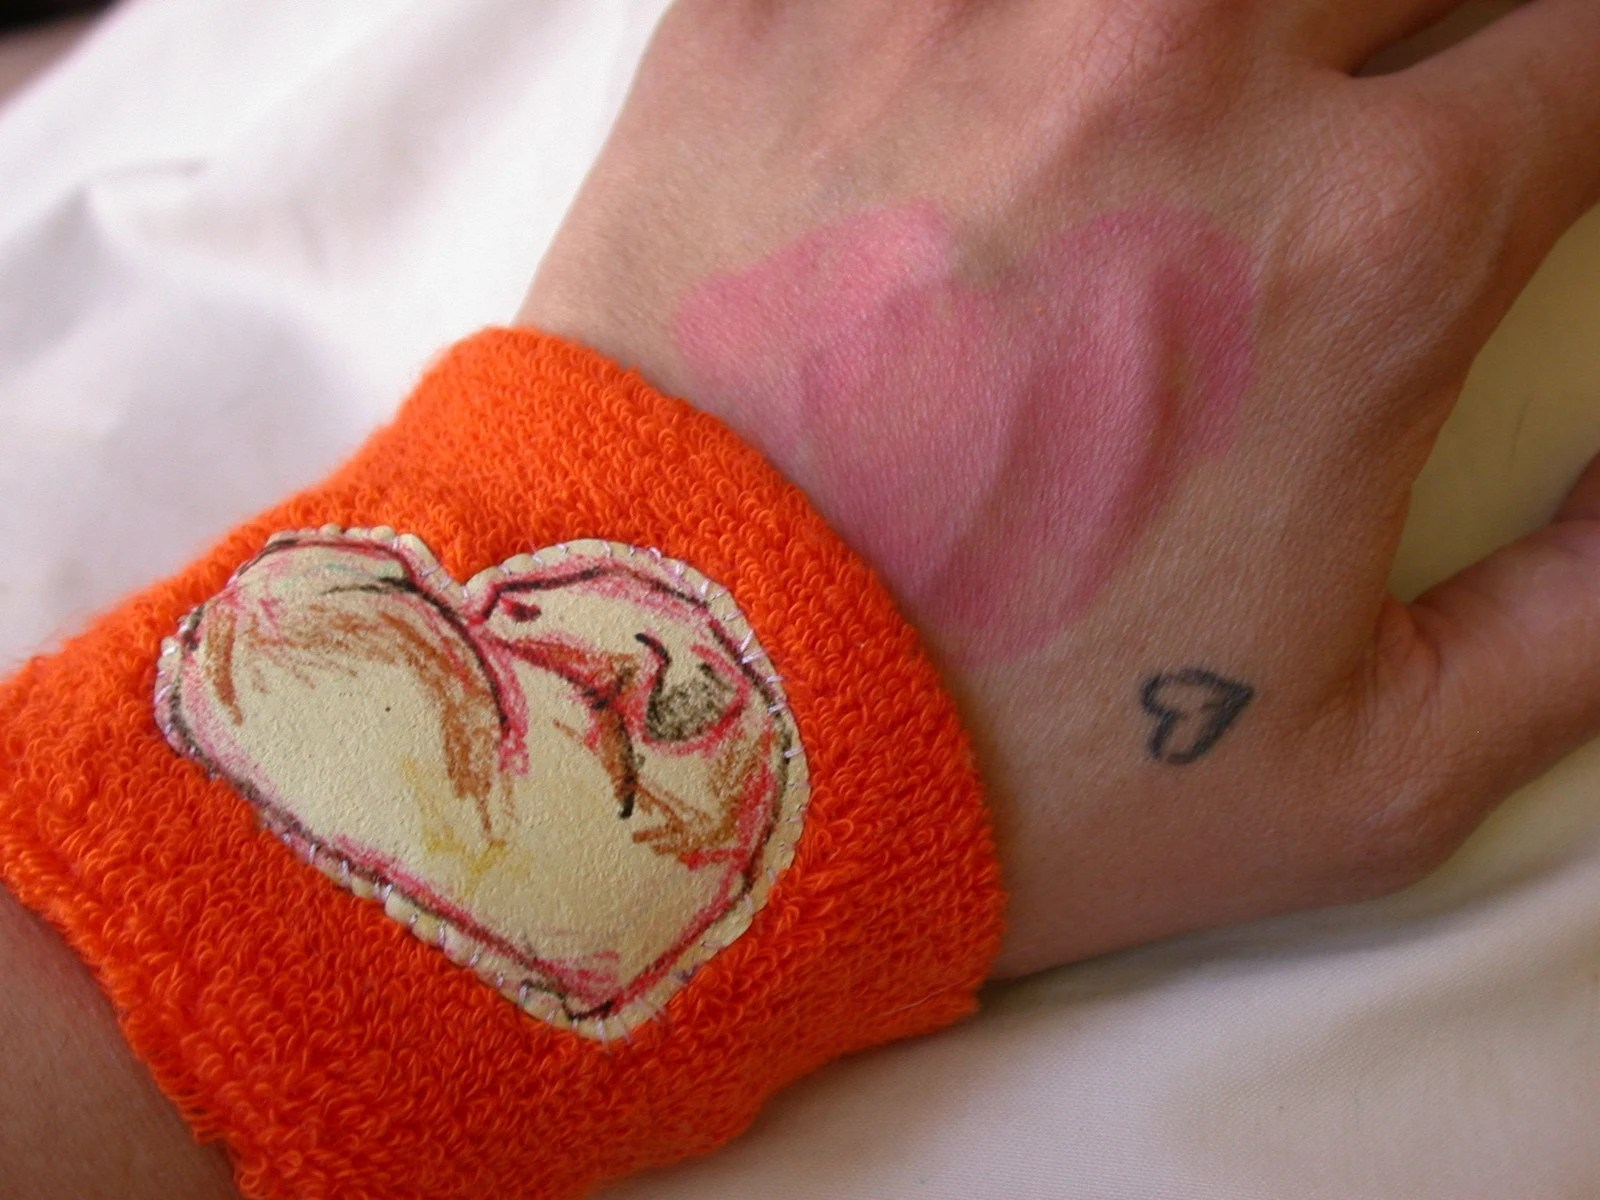 the pink on my hand is a heart my daughter drew on me.  it looks very lovely and much less skin-issue like in real life...